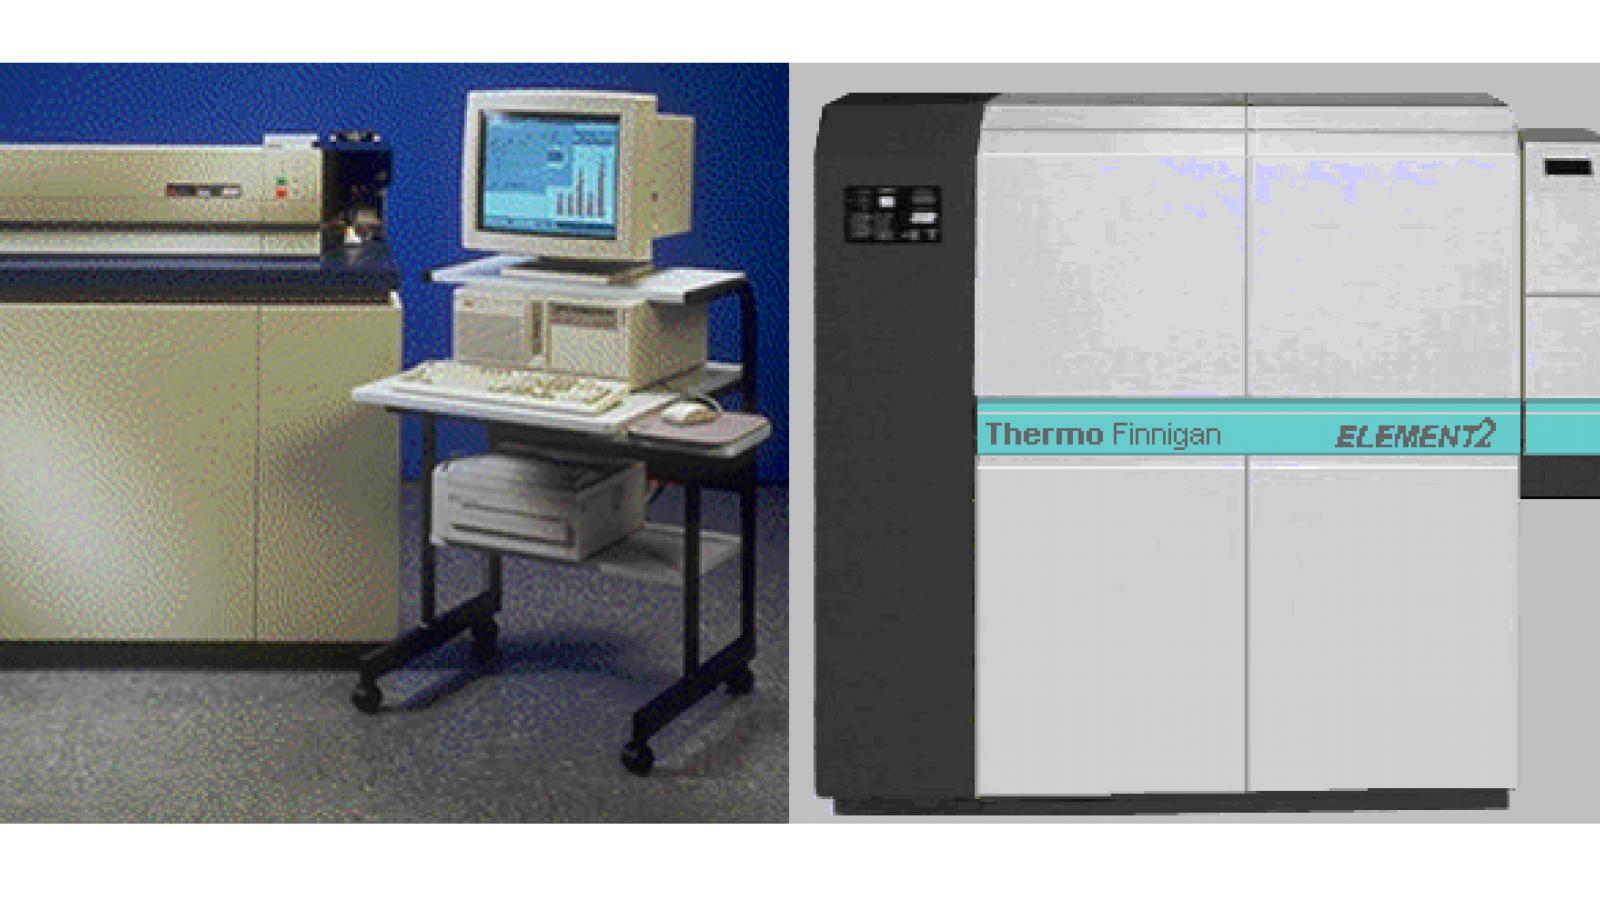 The Perkin-Elmer Sciex ELAN 6000 (left) and the ThermoFinnigan Element 2 (right).